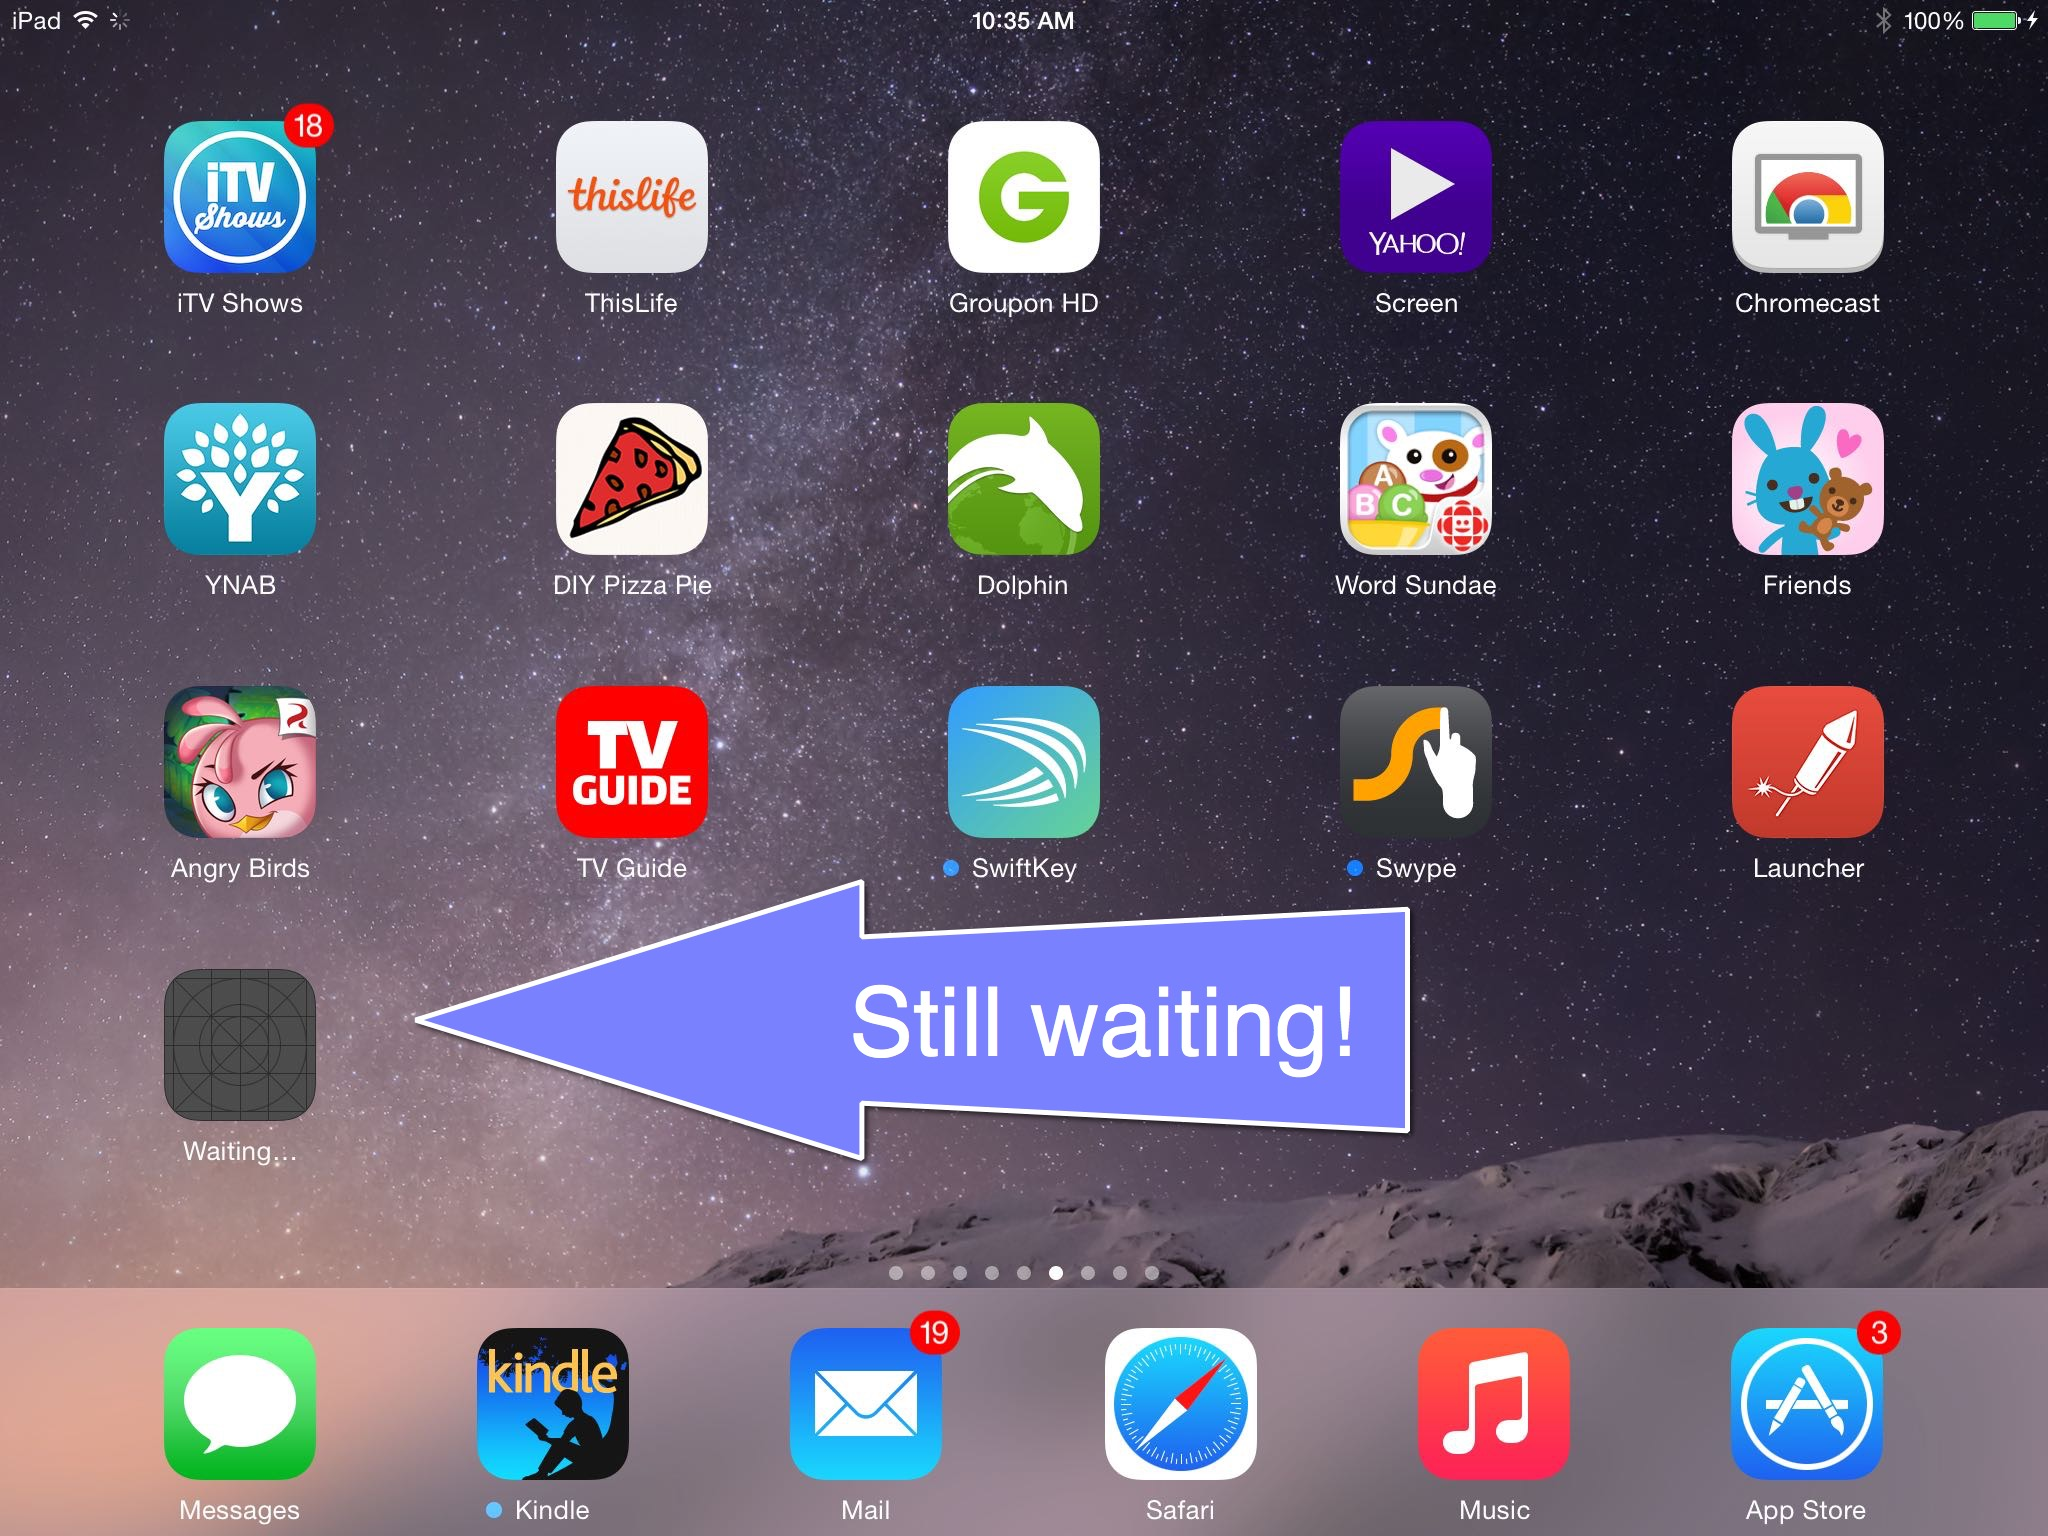 Bad Apple: Some iOS device owners can't download and install apps with iOS 8